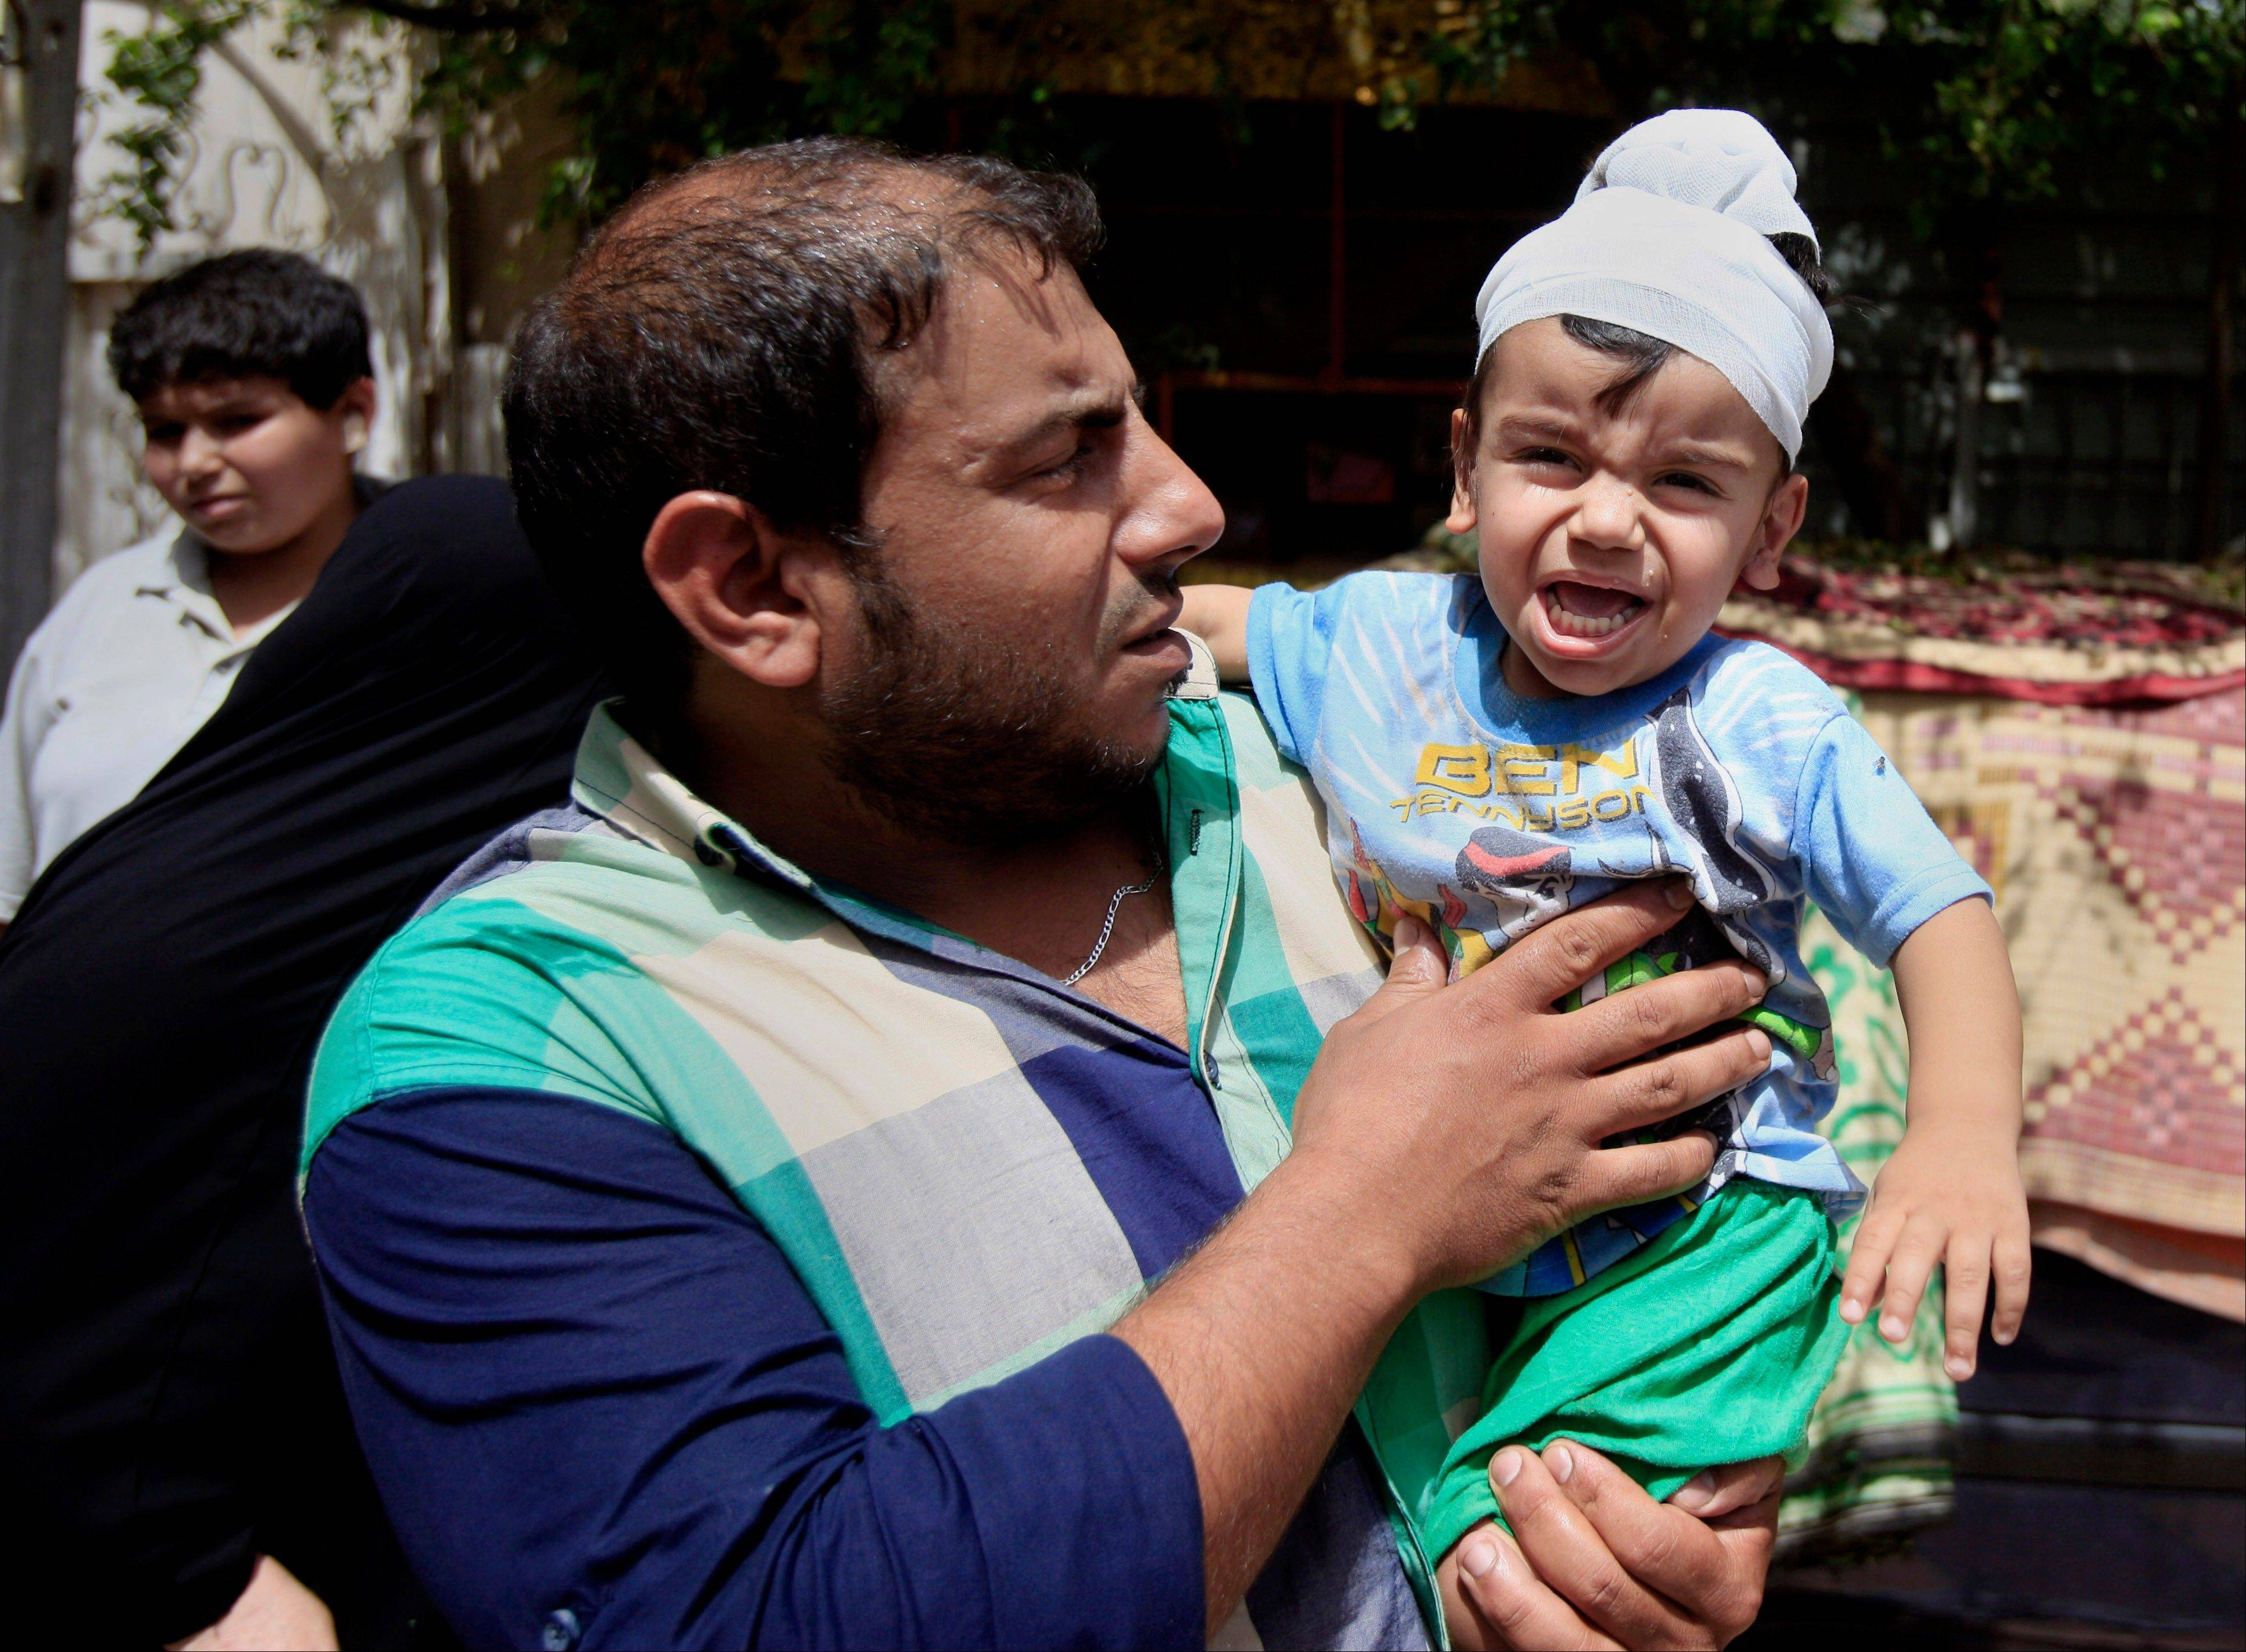 Ali Arar holds his one-year-old wounded son, Aqeel Ali, at the scene of a car-bomb attack in the Sadr City neighborhood in Baghdad, Iraq, Thursday, May 16, 2013. A car bomb explosion in a sprawling Shiite neighborhood of Baghdad has killed and wounded dozens of people, officials said.